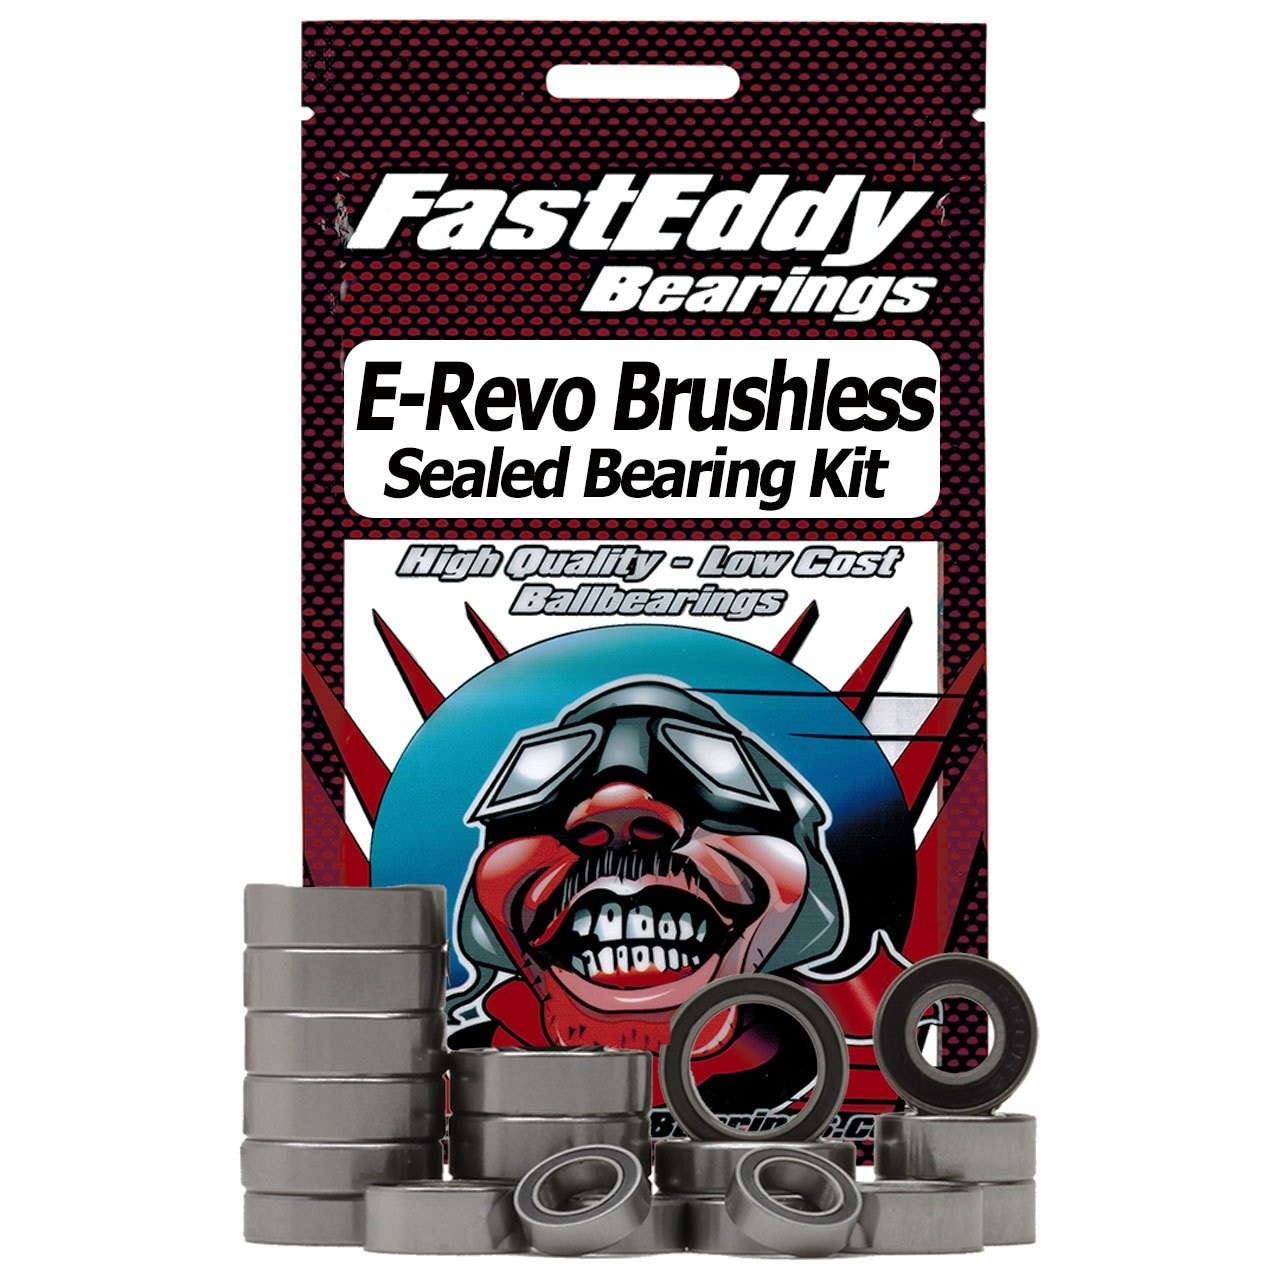 Traxxas E-Revo Brushless Sealed Ball Bearing Kit for RC Cars